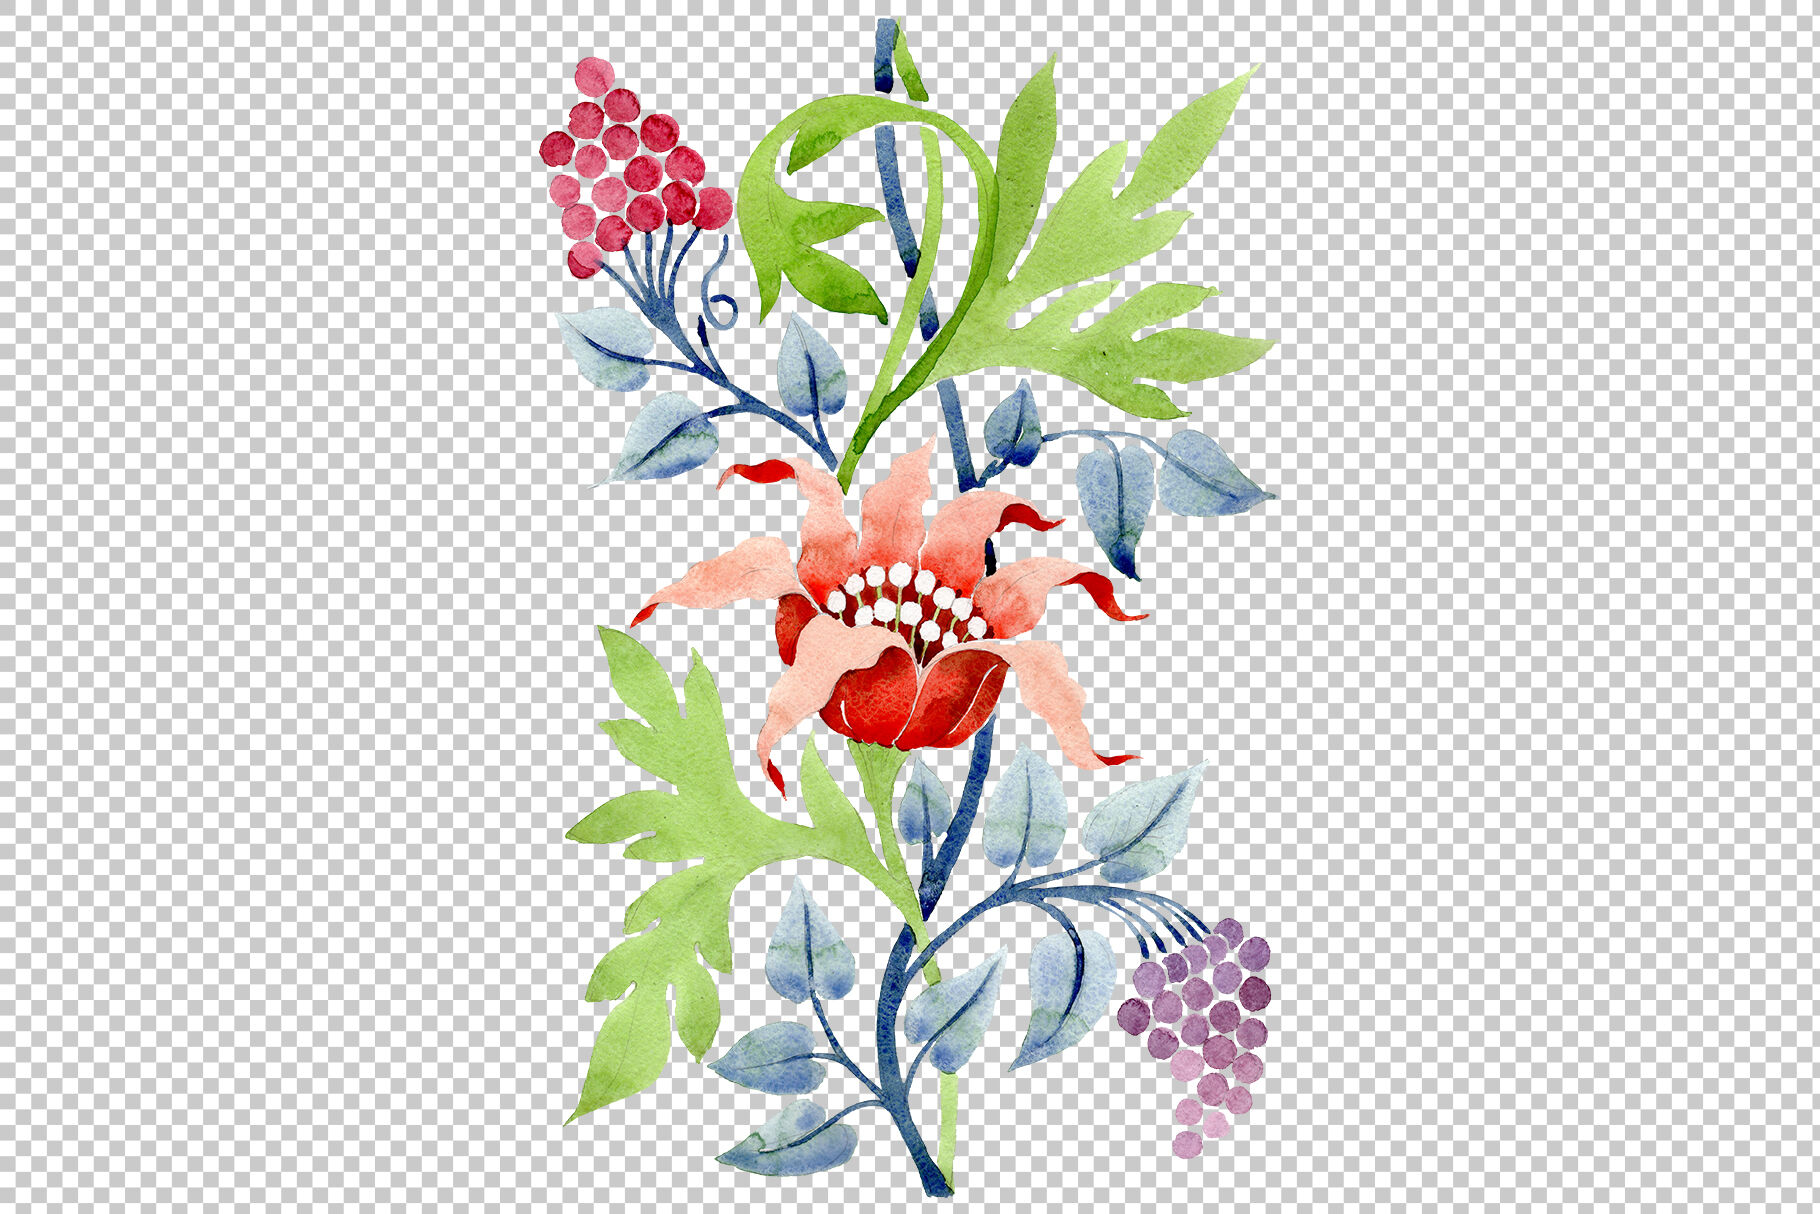 Ornament Flower Aromas Of Nature Watercolor Png By Mystocks